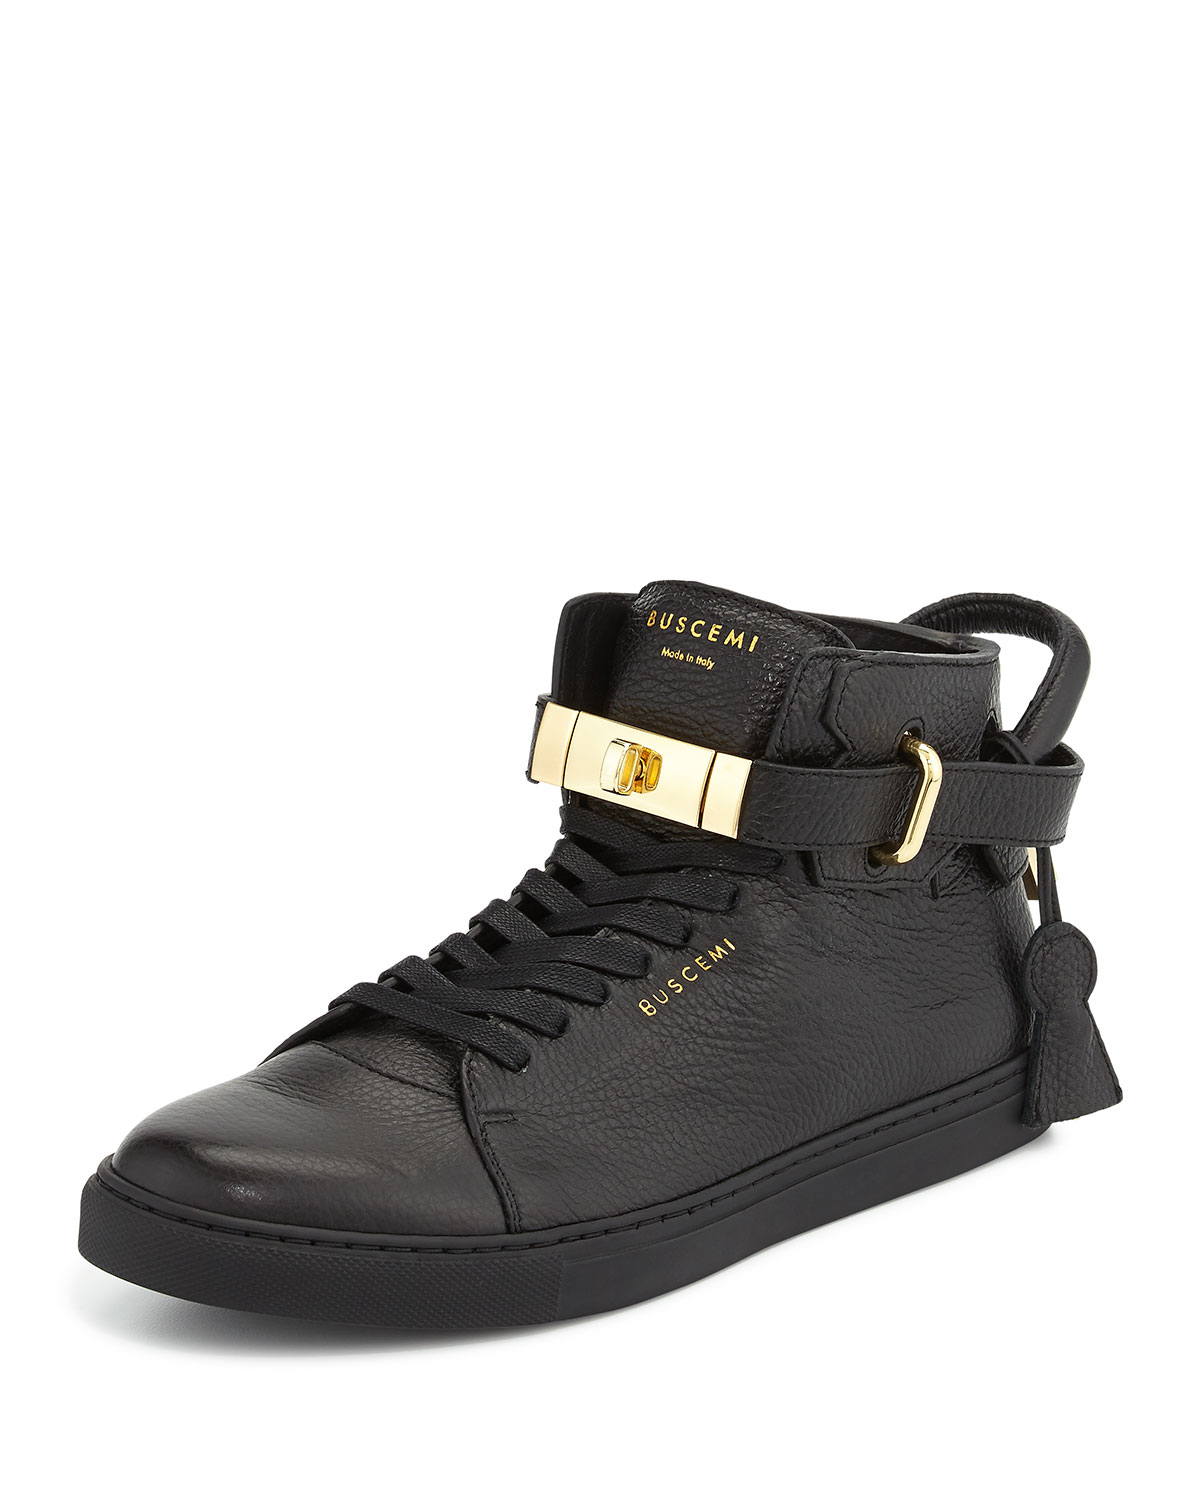 Buscemi High-Top Padlock Sneakers w/ Tags cheap many kinds of uNBmQH